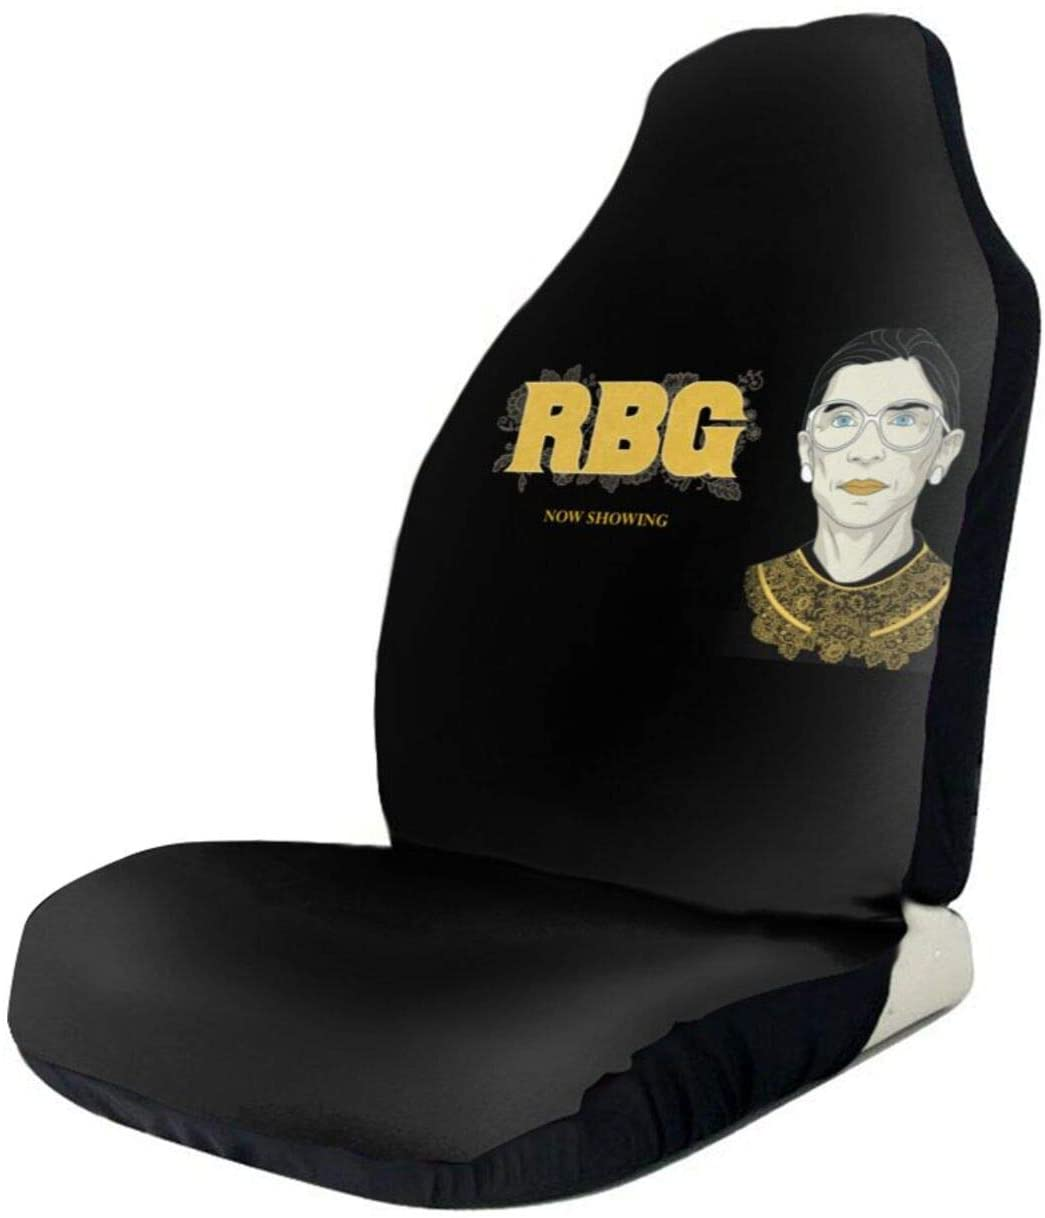 DASIDENG Notorious RBG Universal Front Seat Cover Bucket Seat Cover Blanket, Pad Protectors for Car, SUV